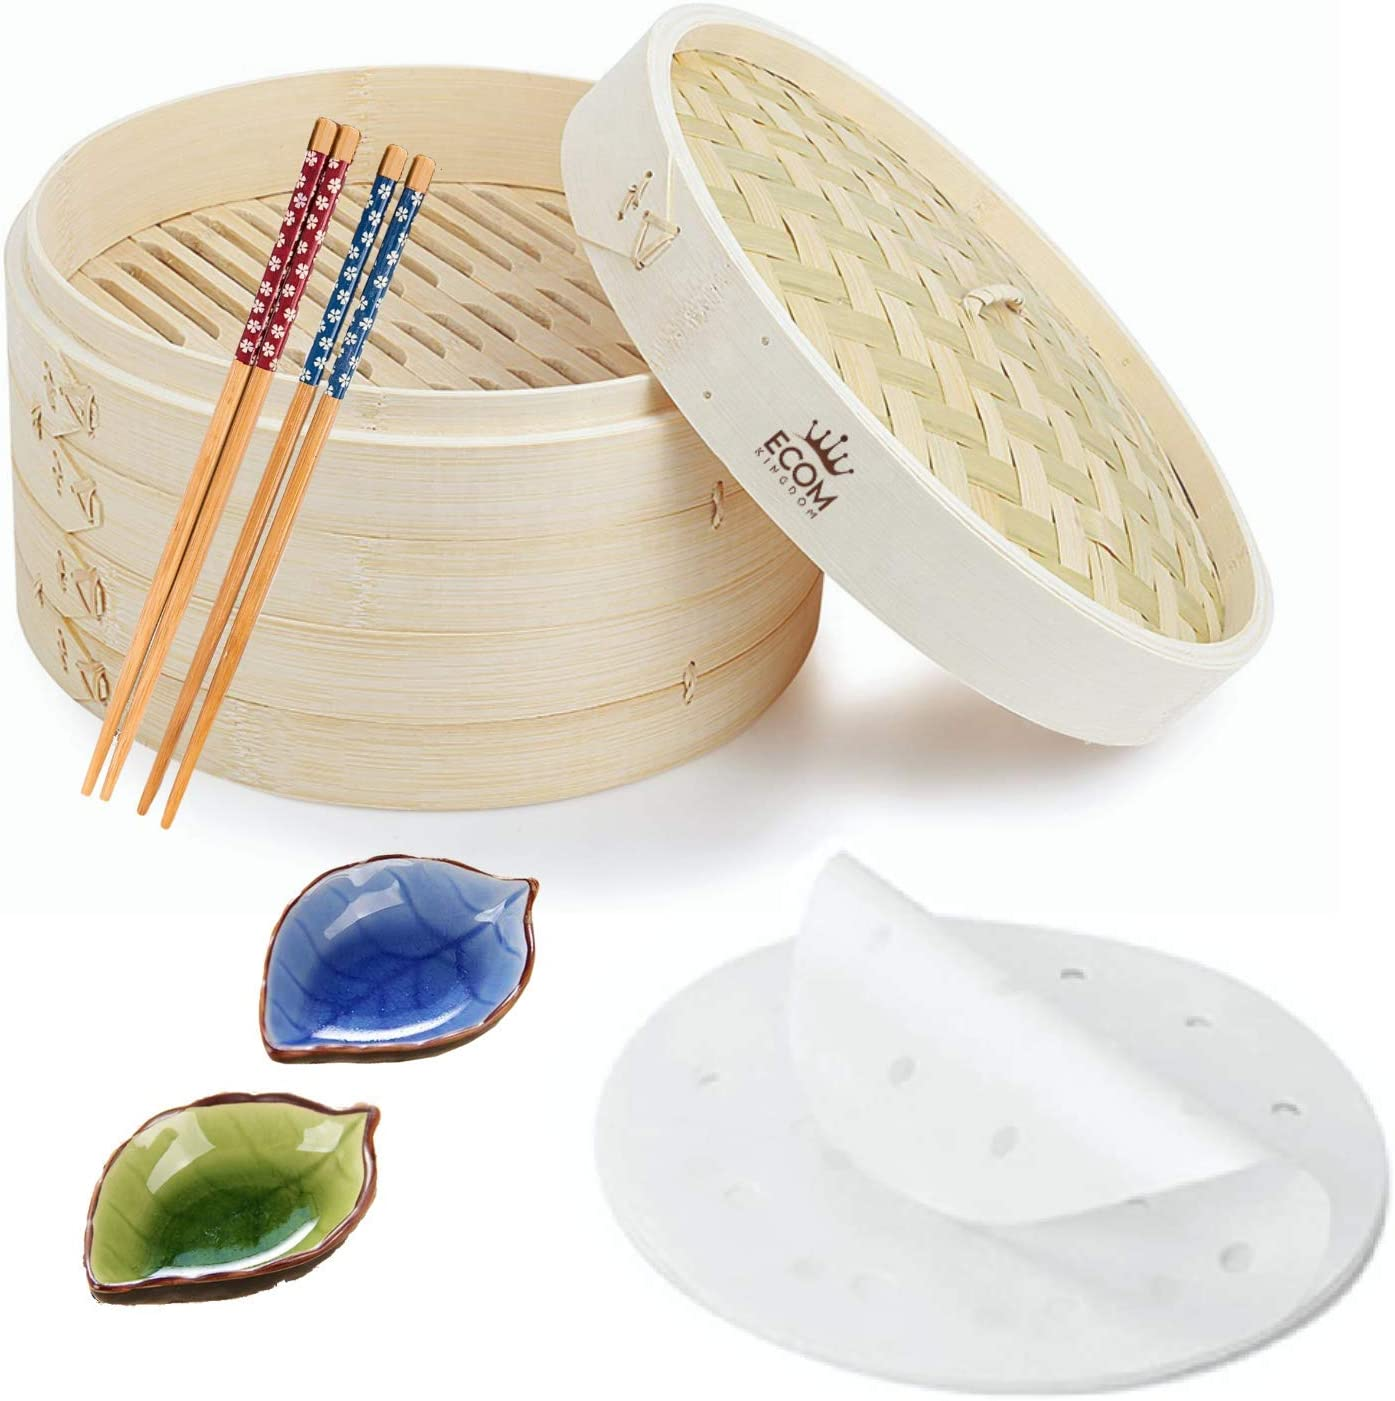 EcomKingdom 10-Inch Bamboo Steamer Basket Set-2 Tier Handmade Steamer, Perfect for Dumpling Steaming Vegies, Meat, Fish, Chinese & Japanese Food, Contain 2 x Chopsticks, 2 x Sauce Dish, 30 x Wax paper